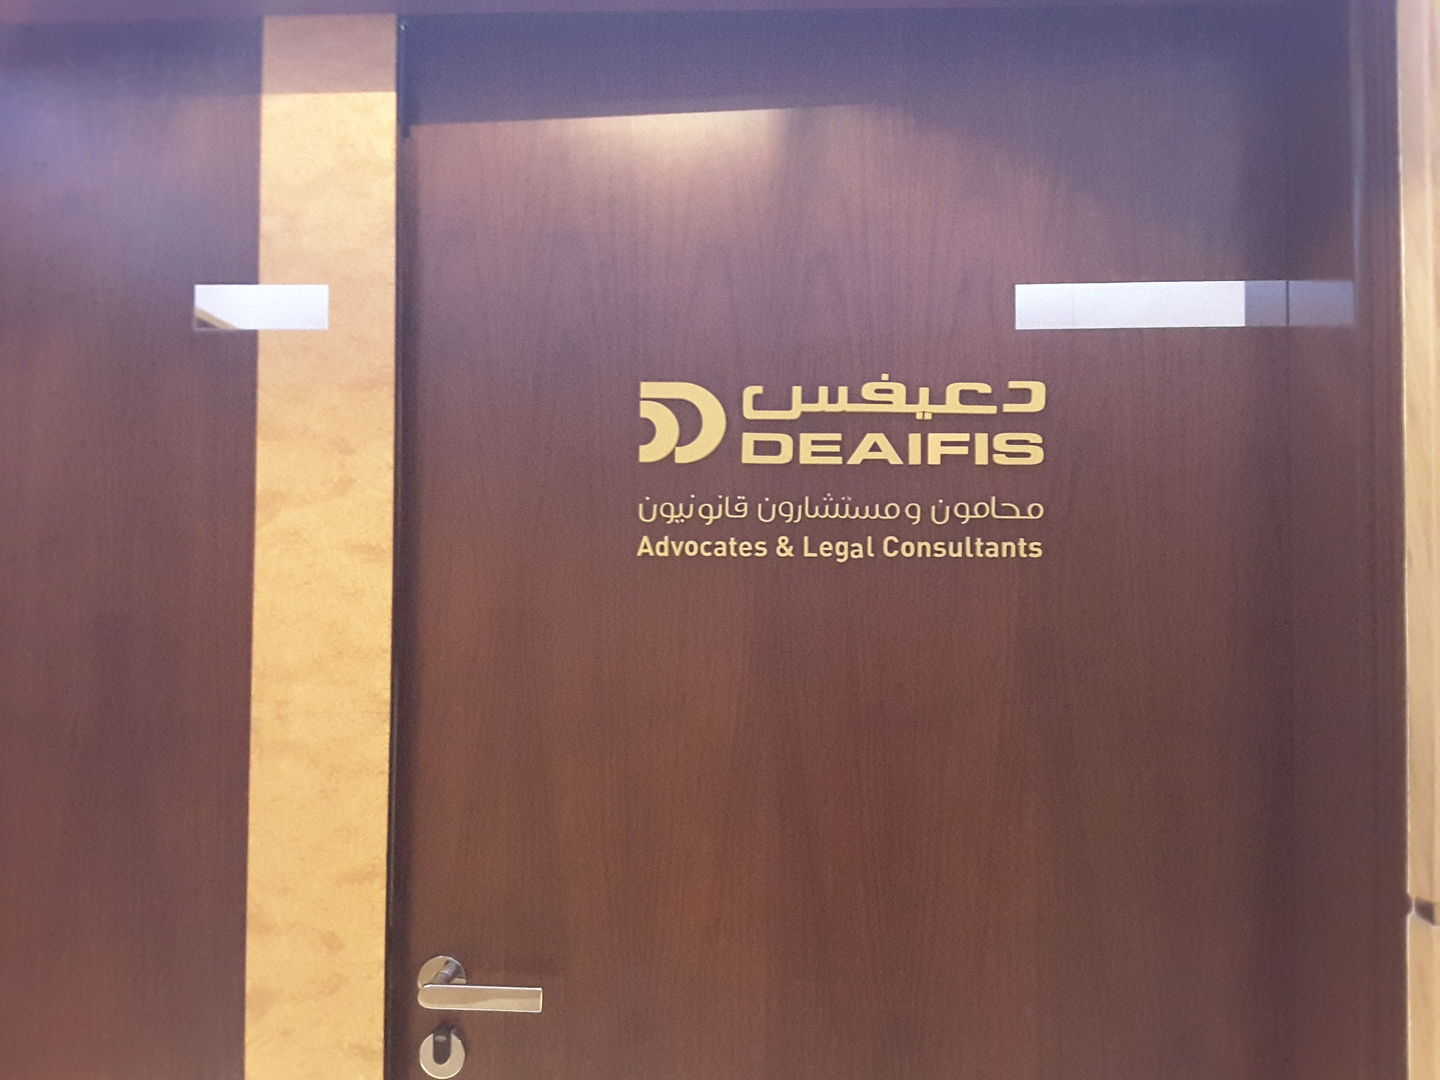 HiDubai-business-deaifis-advocates-legal-consultants-finance-legal-legal-services-sheikh-zayed-road-1-trade-centre-2-dubai-2